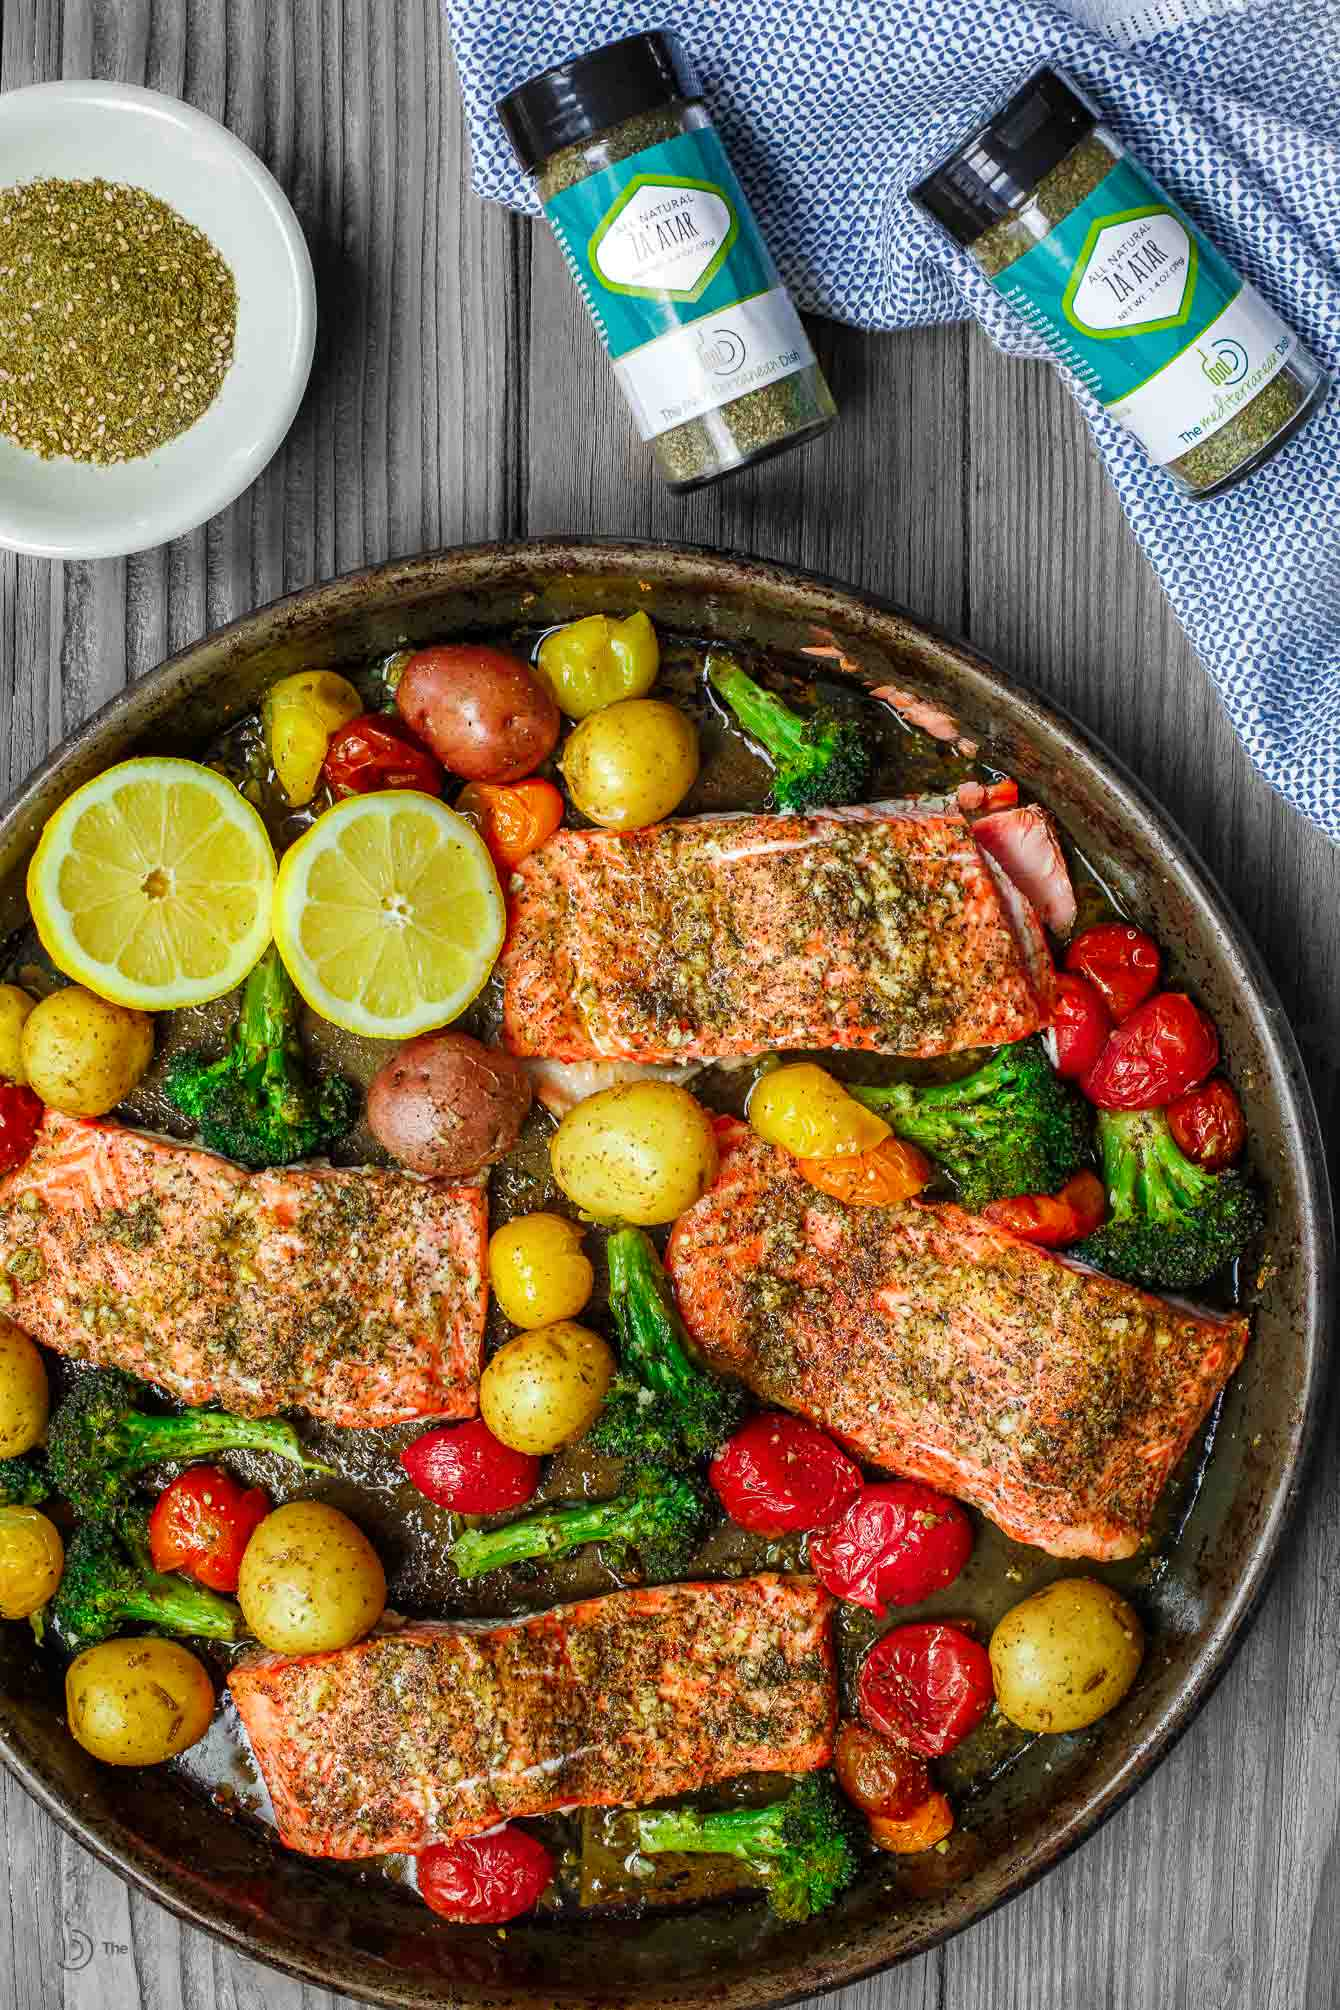 Colorful dish consisting of baked salmon, vegetables and our new Za'atar spice!